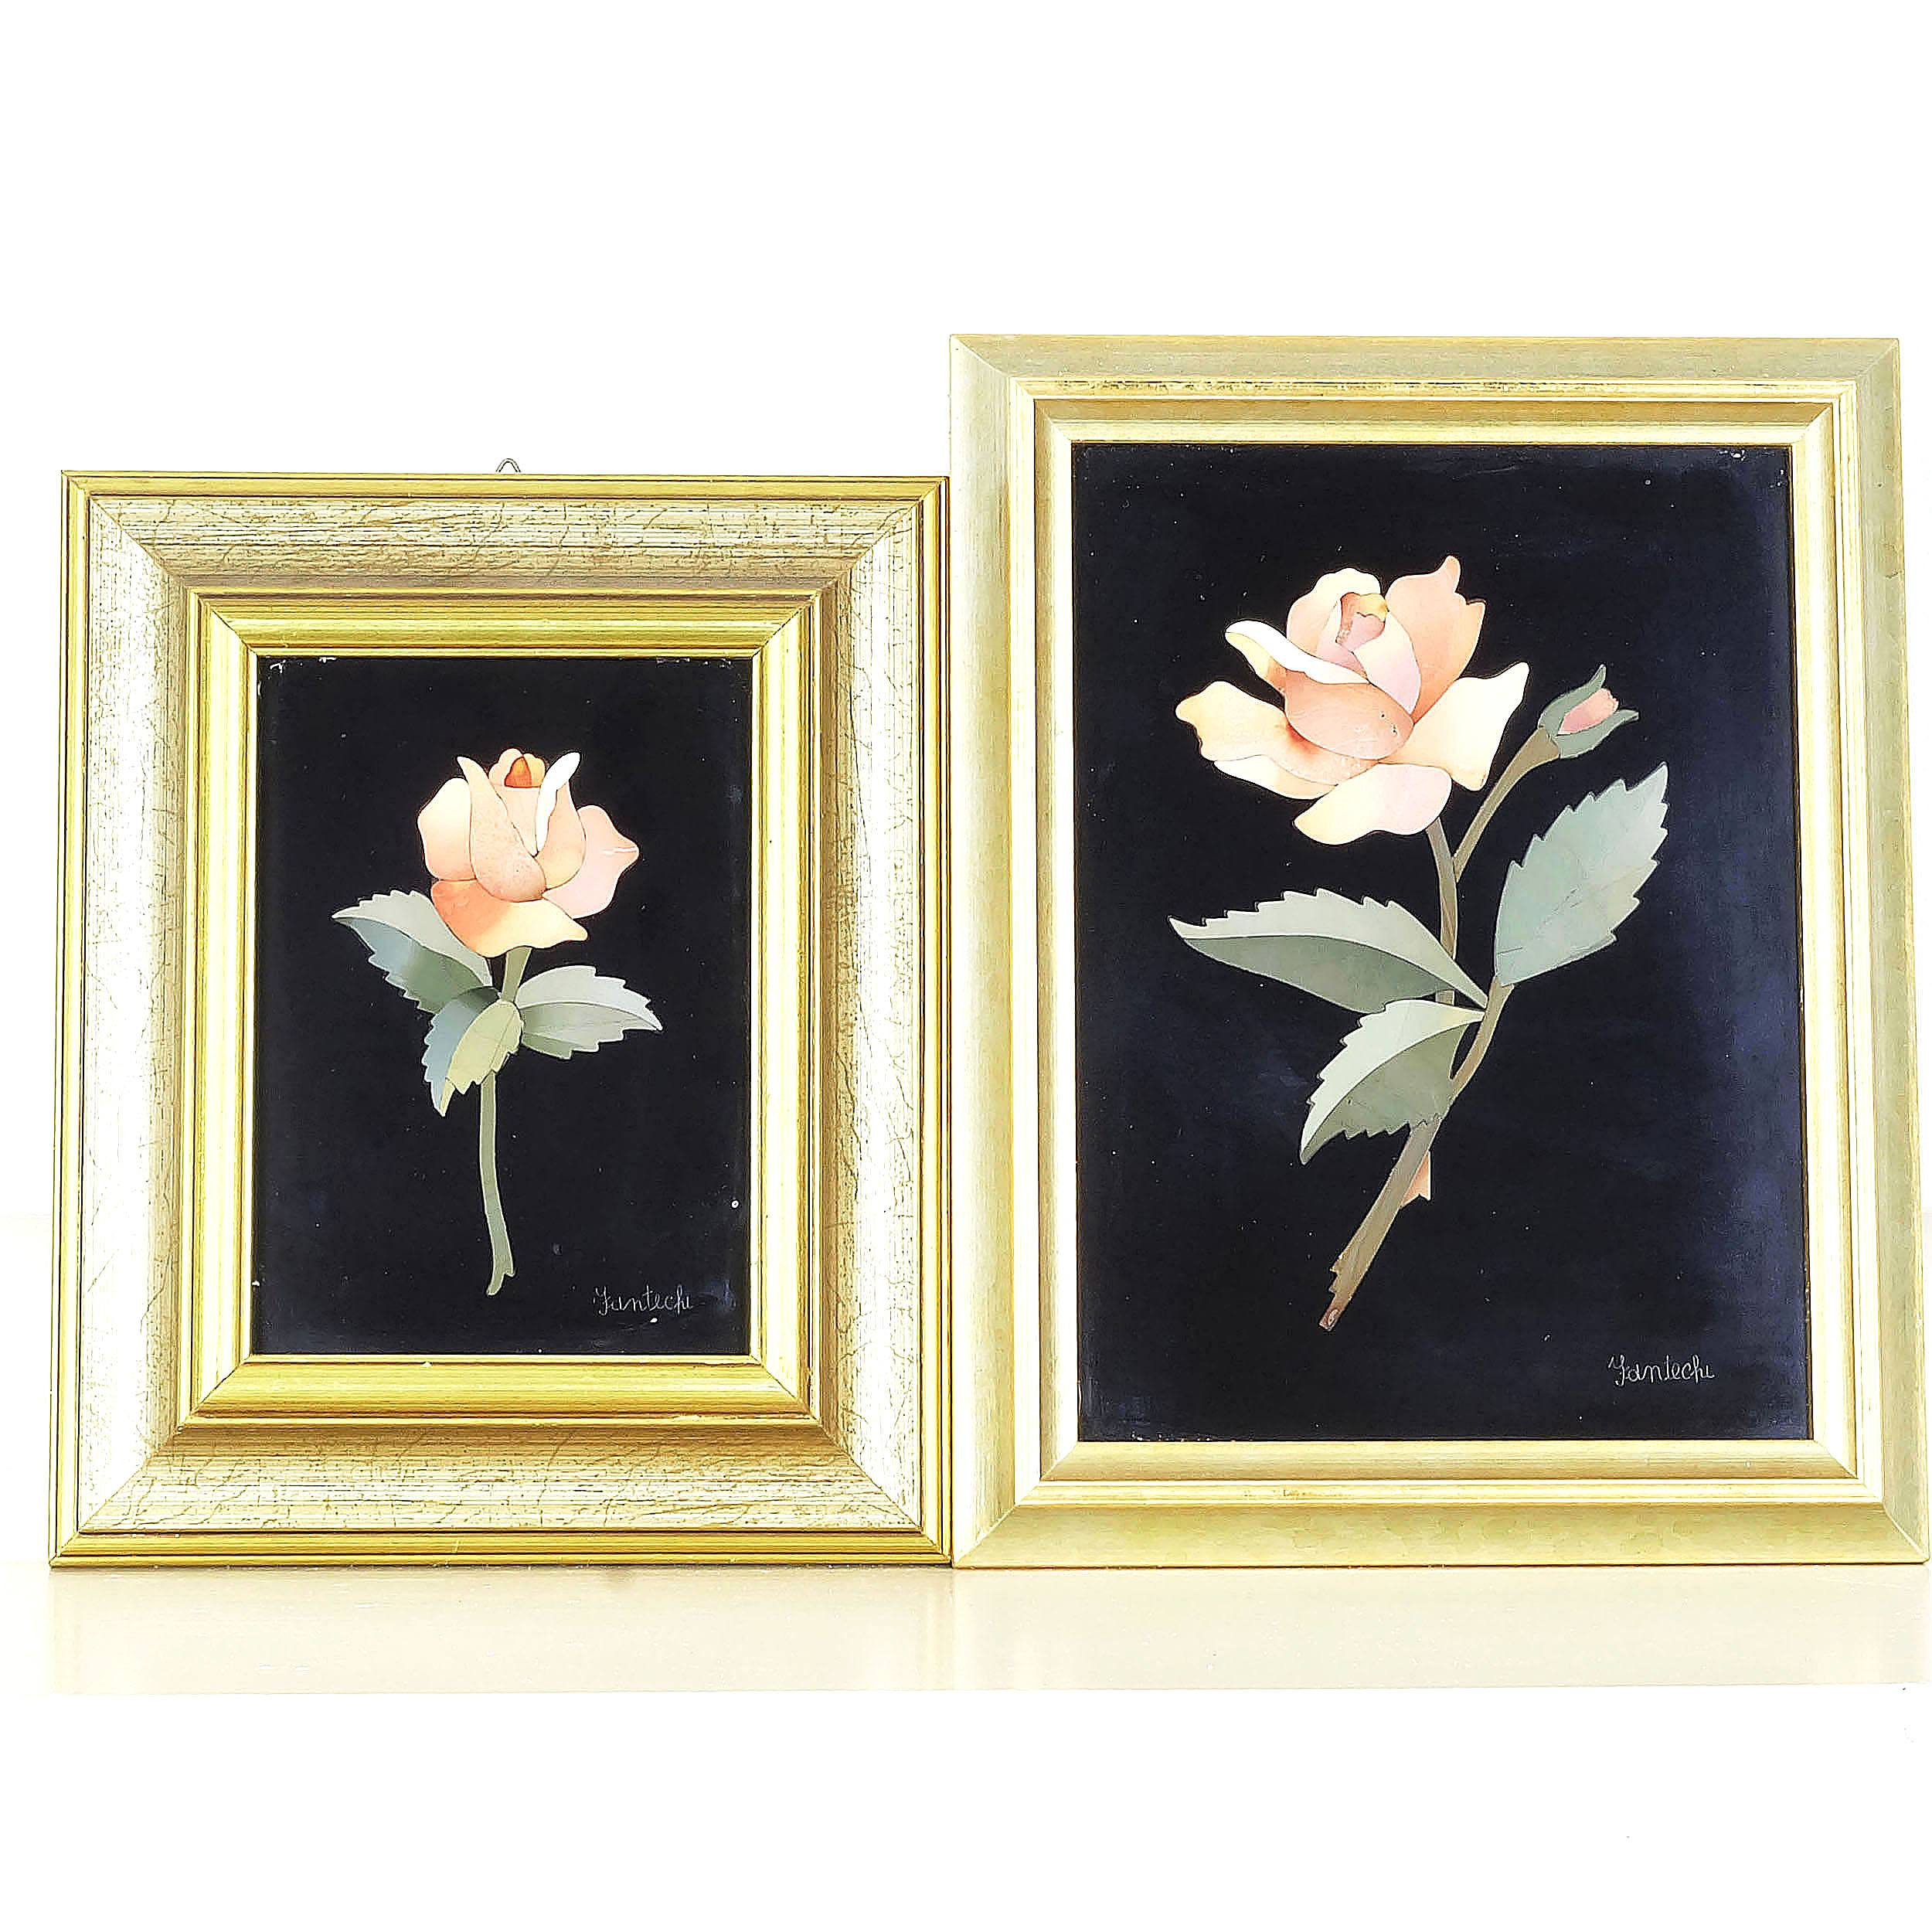 'Two Signed Pietra Dura Floral Still Life Panels'